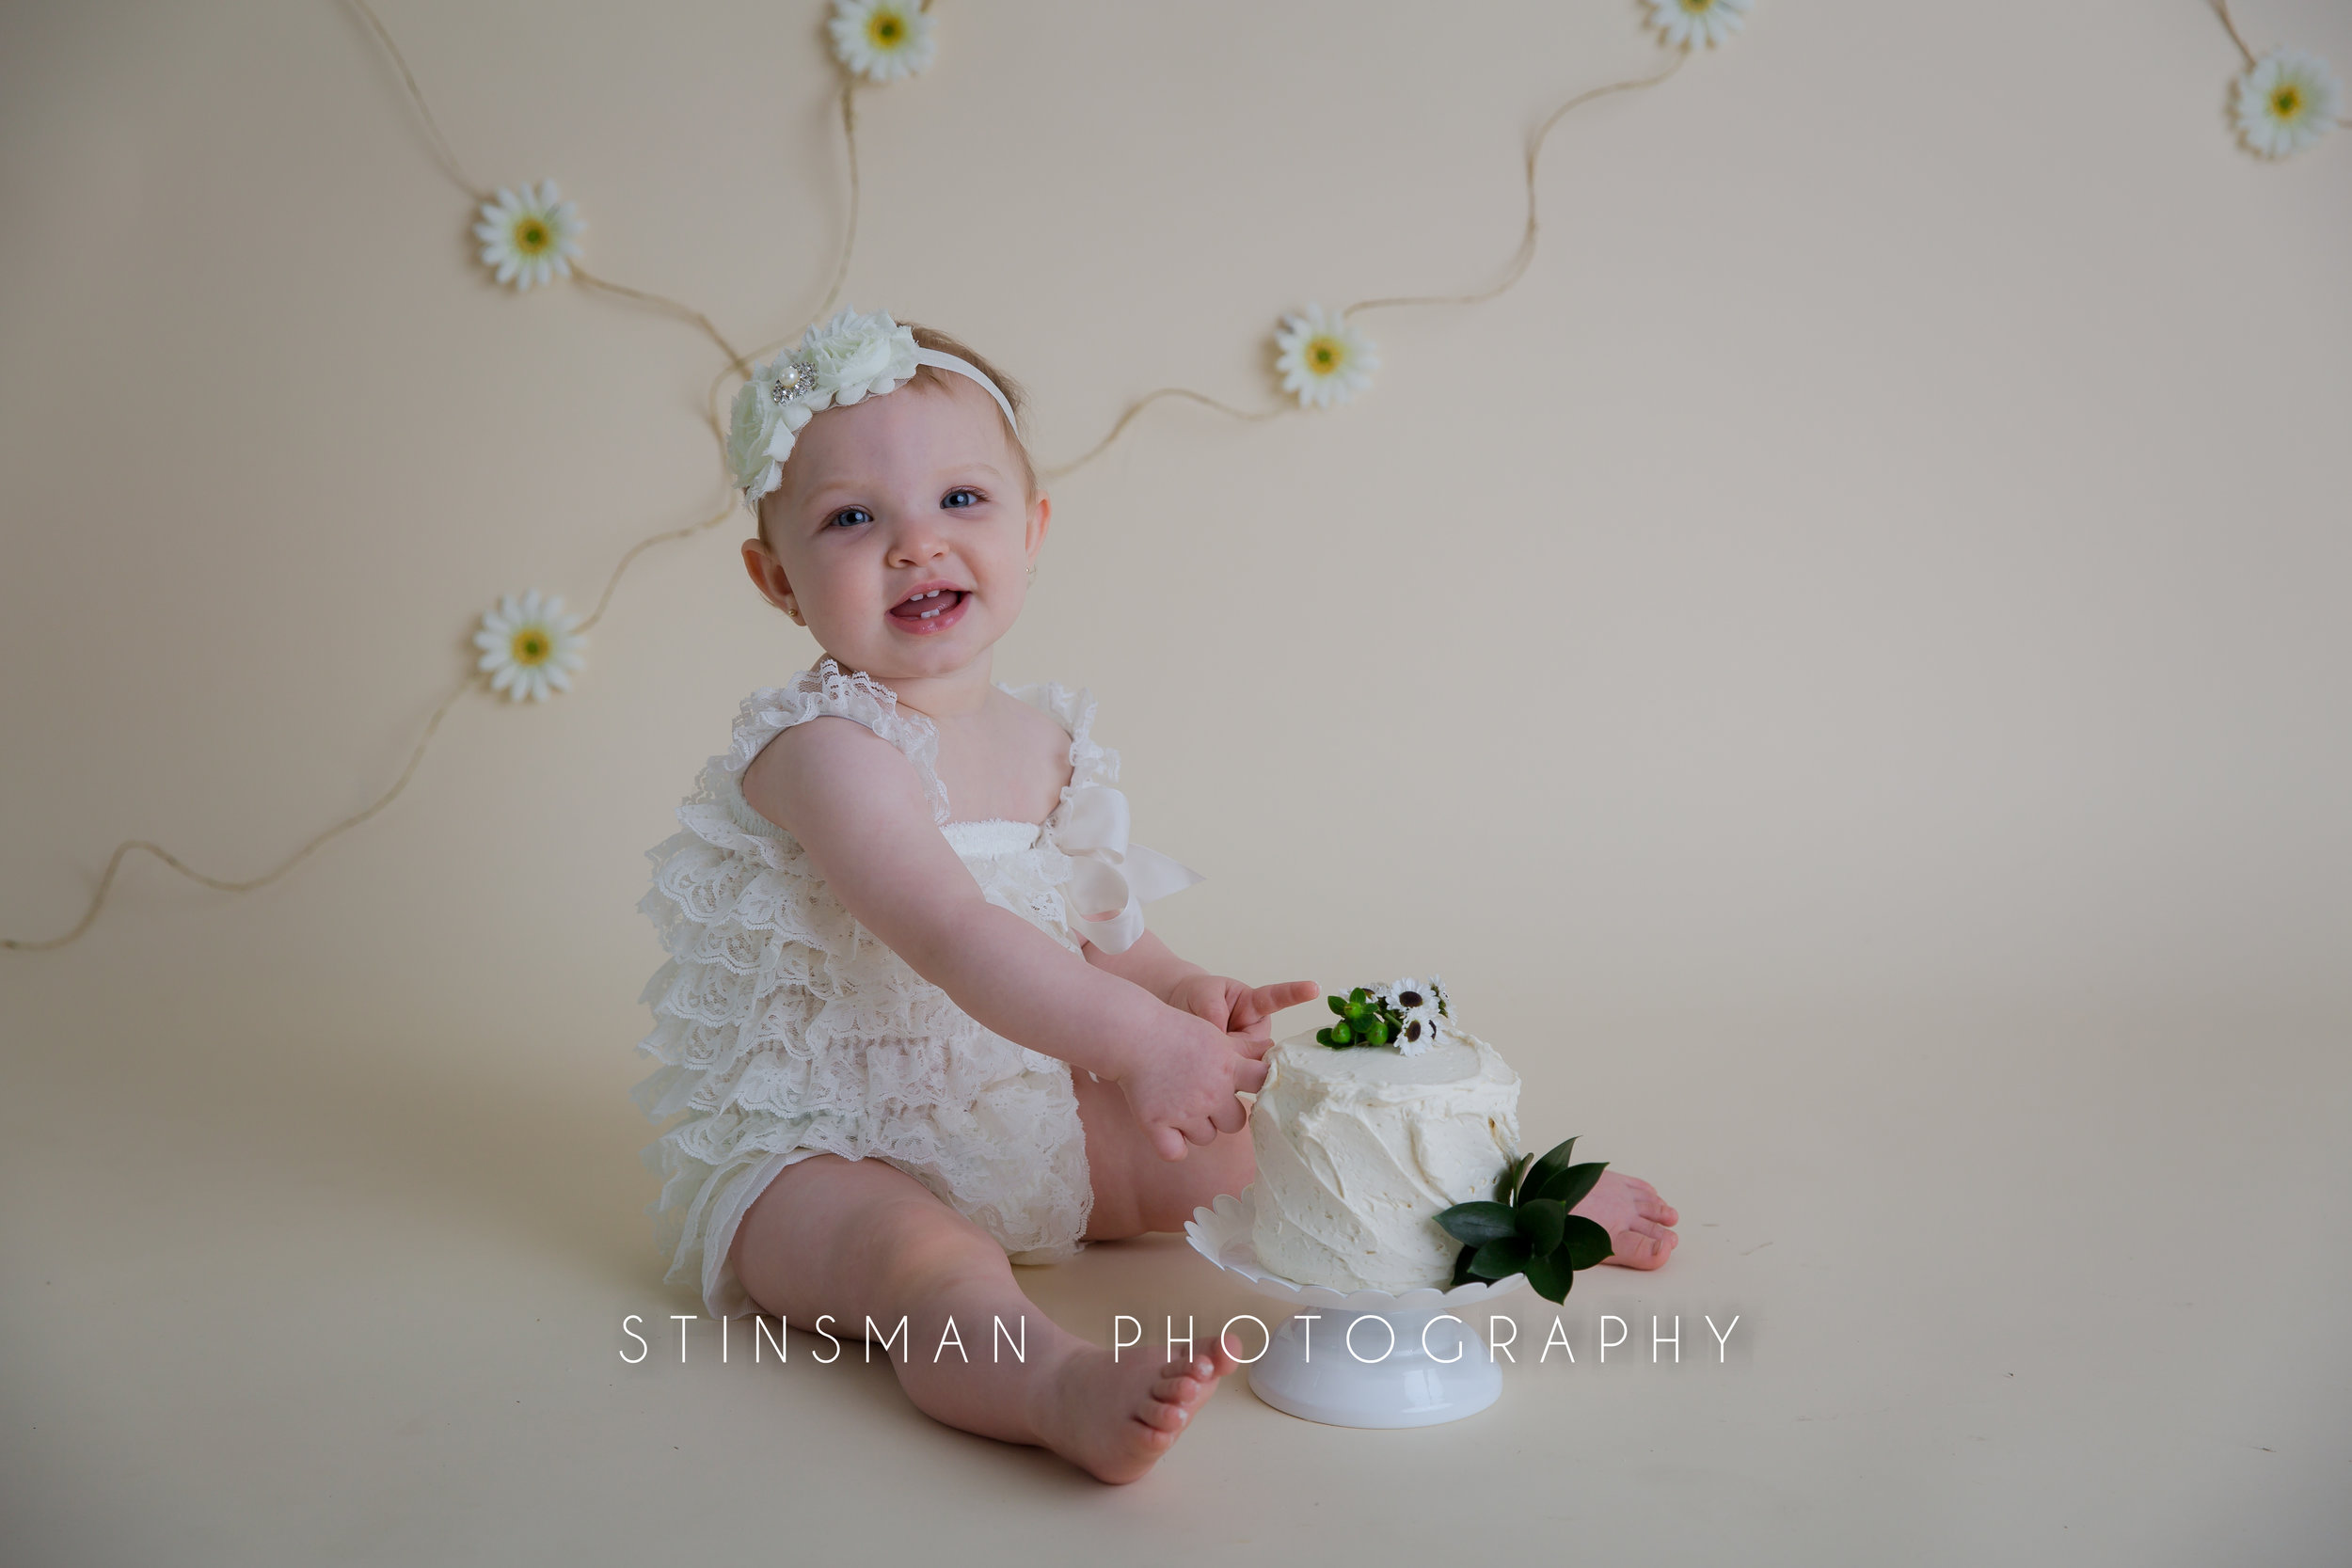 little girl poking her finger into her cake smash cake wearing white with a white headband